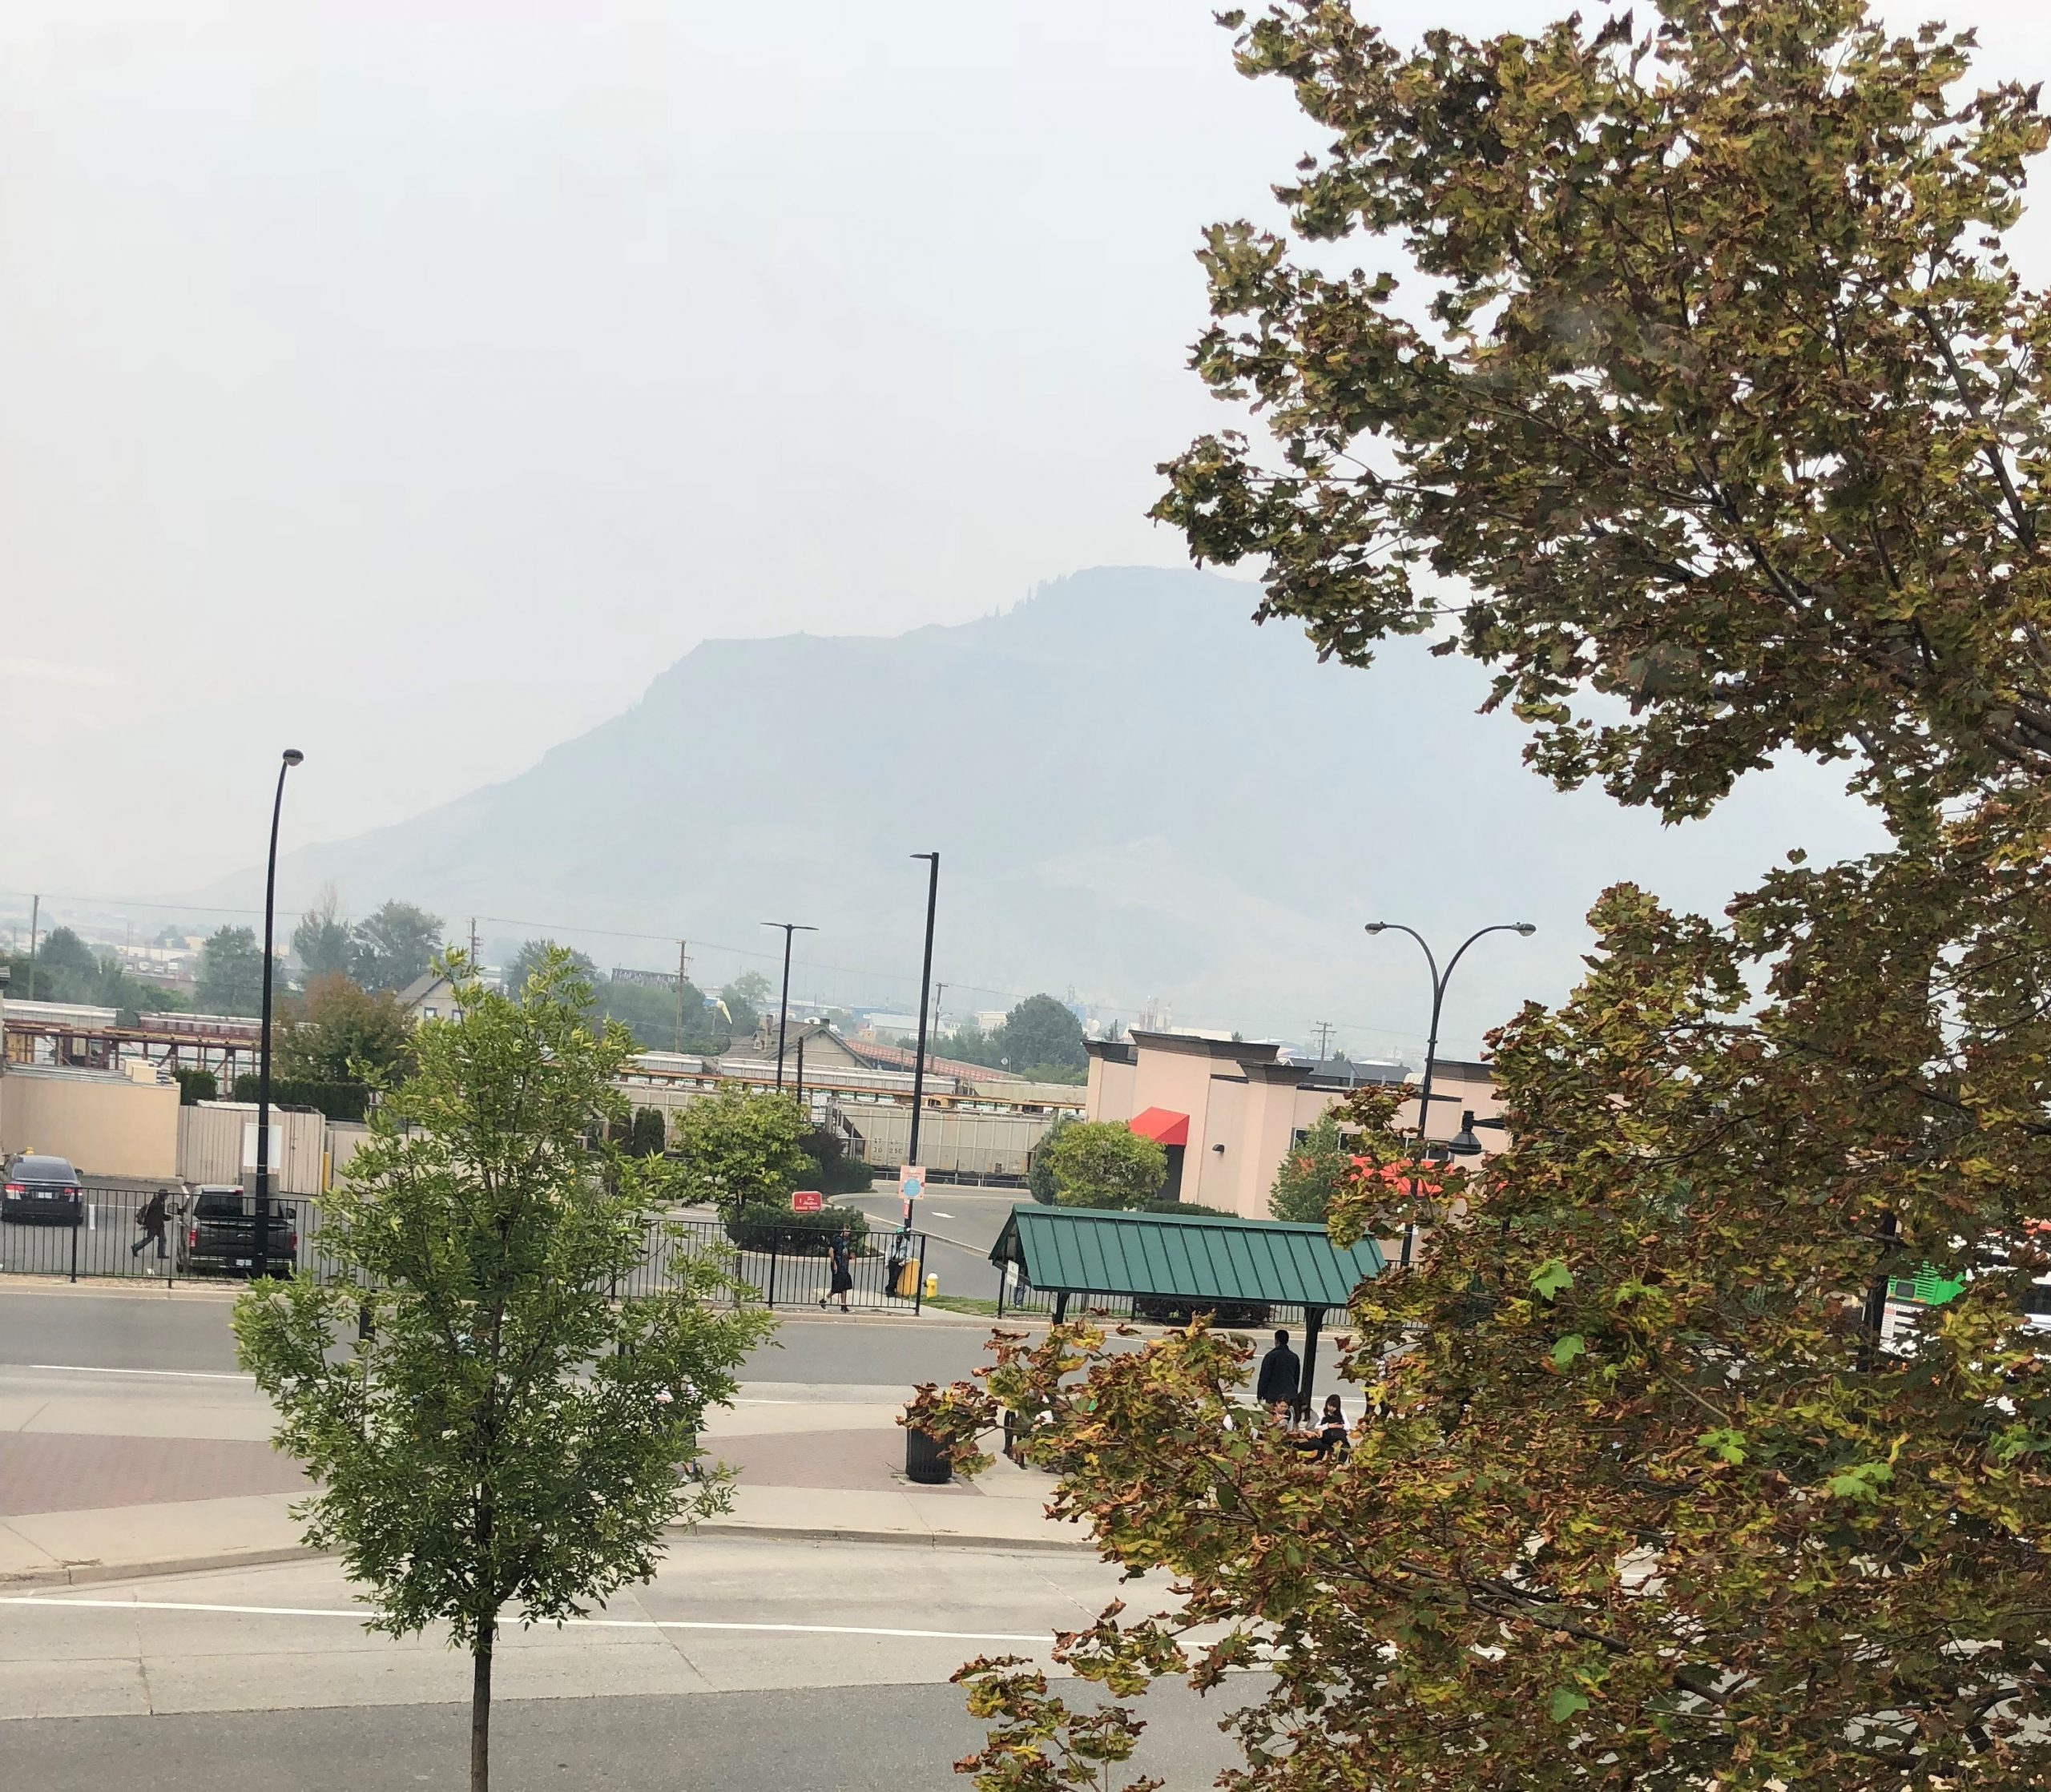 Air quality health index in Kamloops hits extreme range again